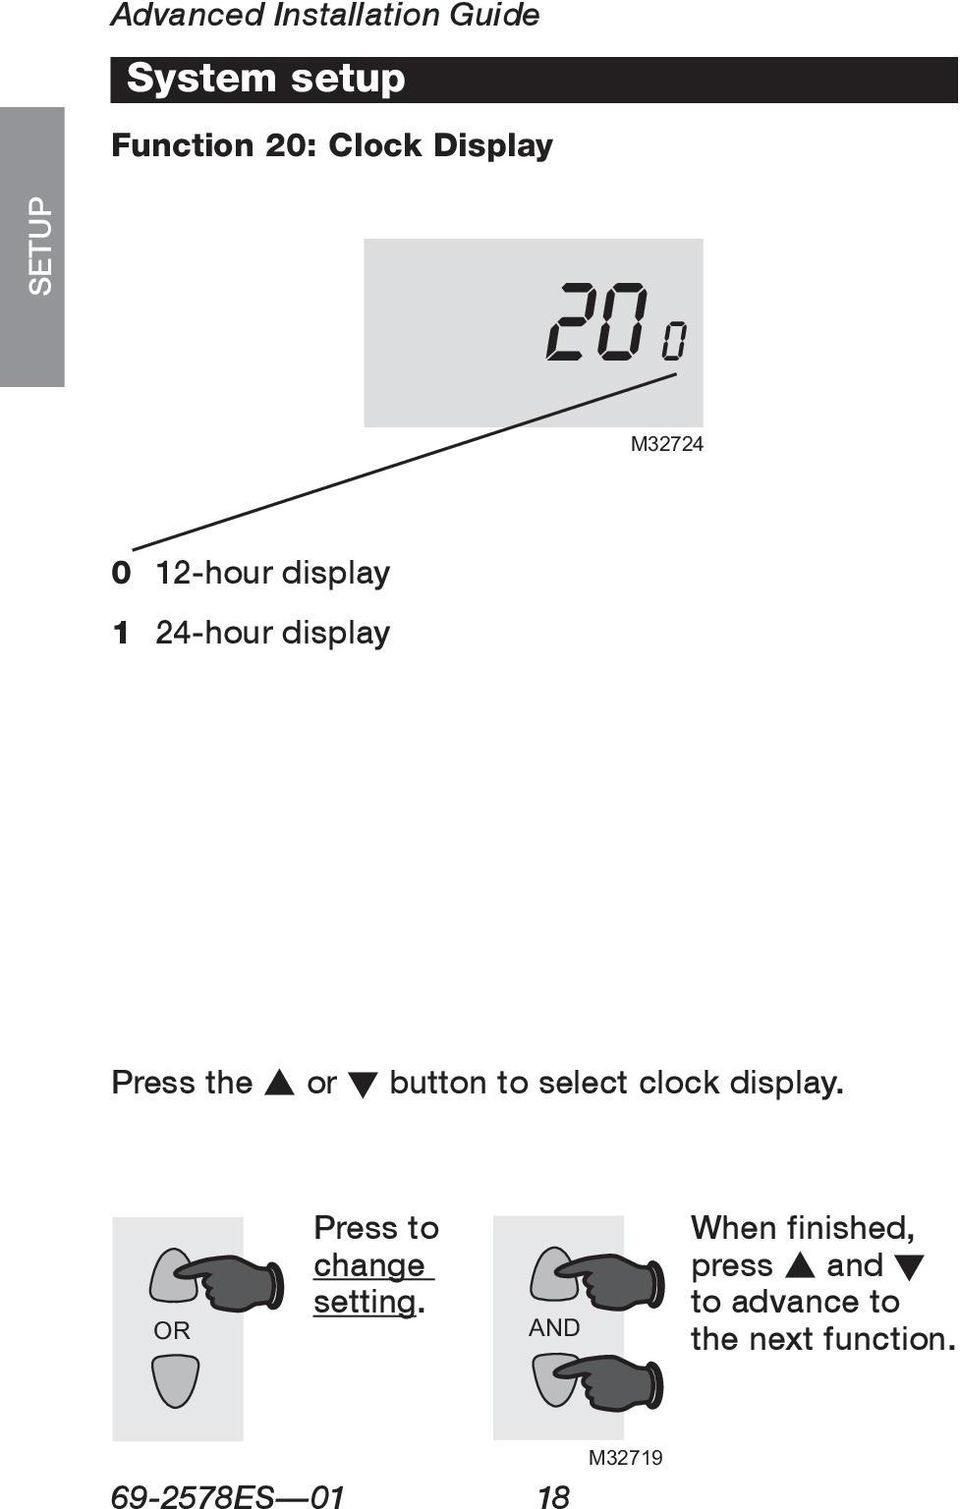 Press the s or t button to select clock display. OR Press to change setting.